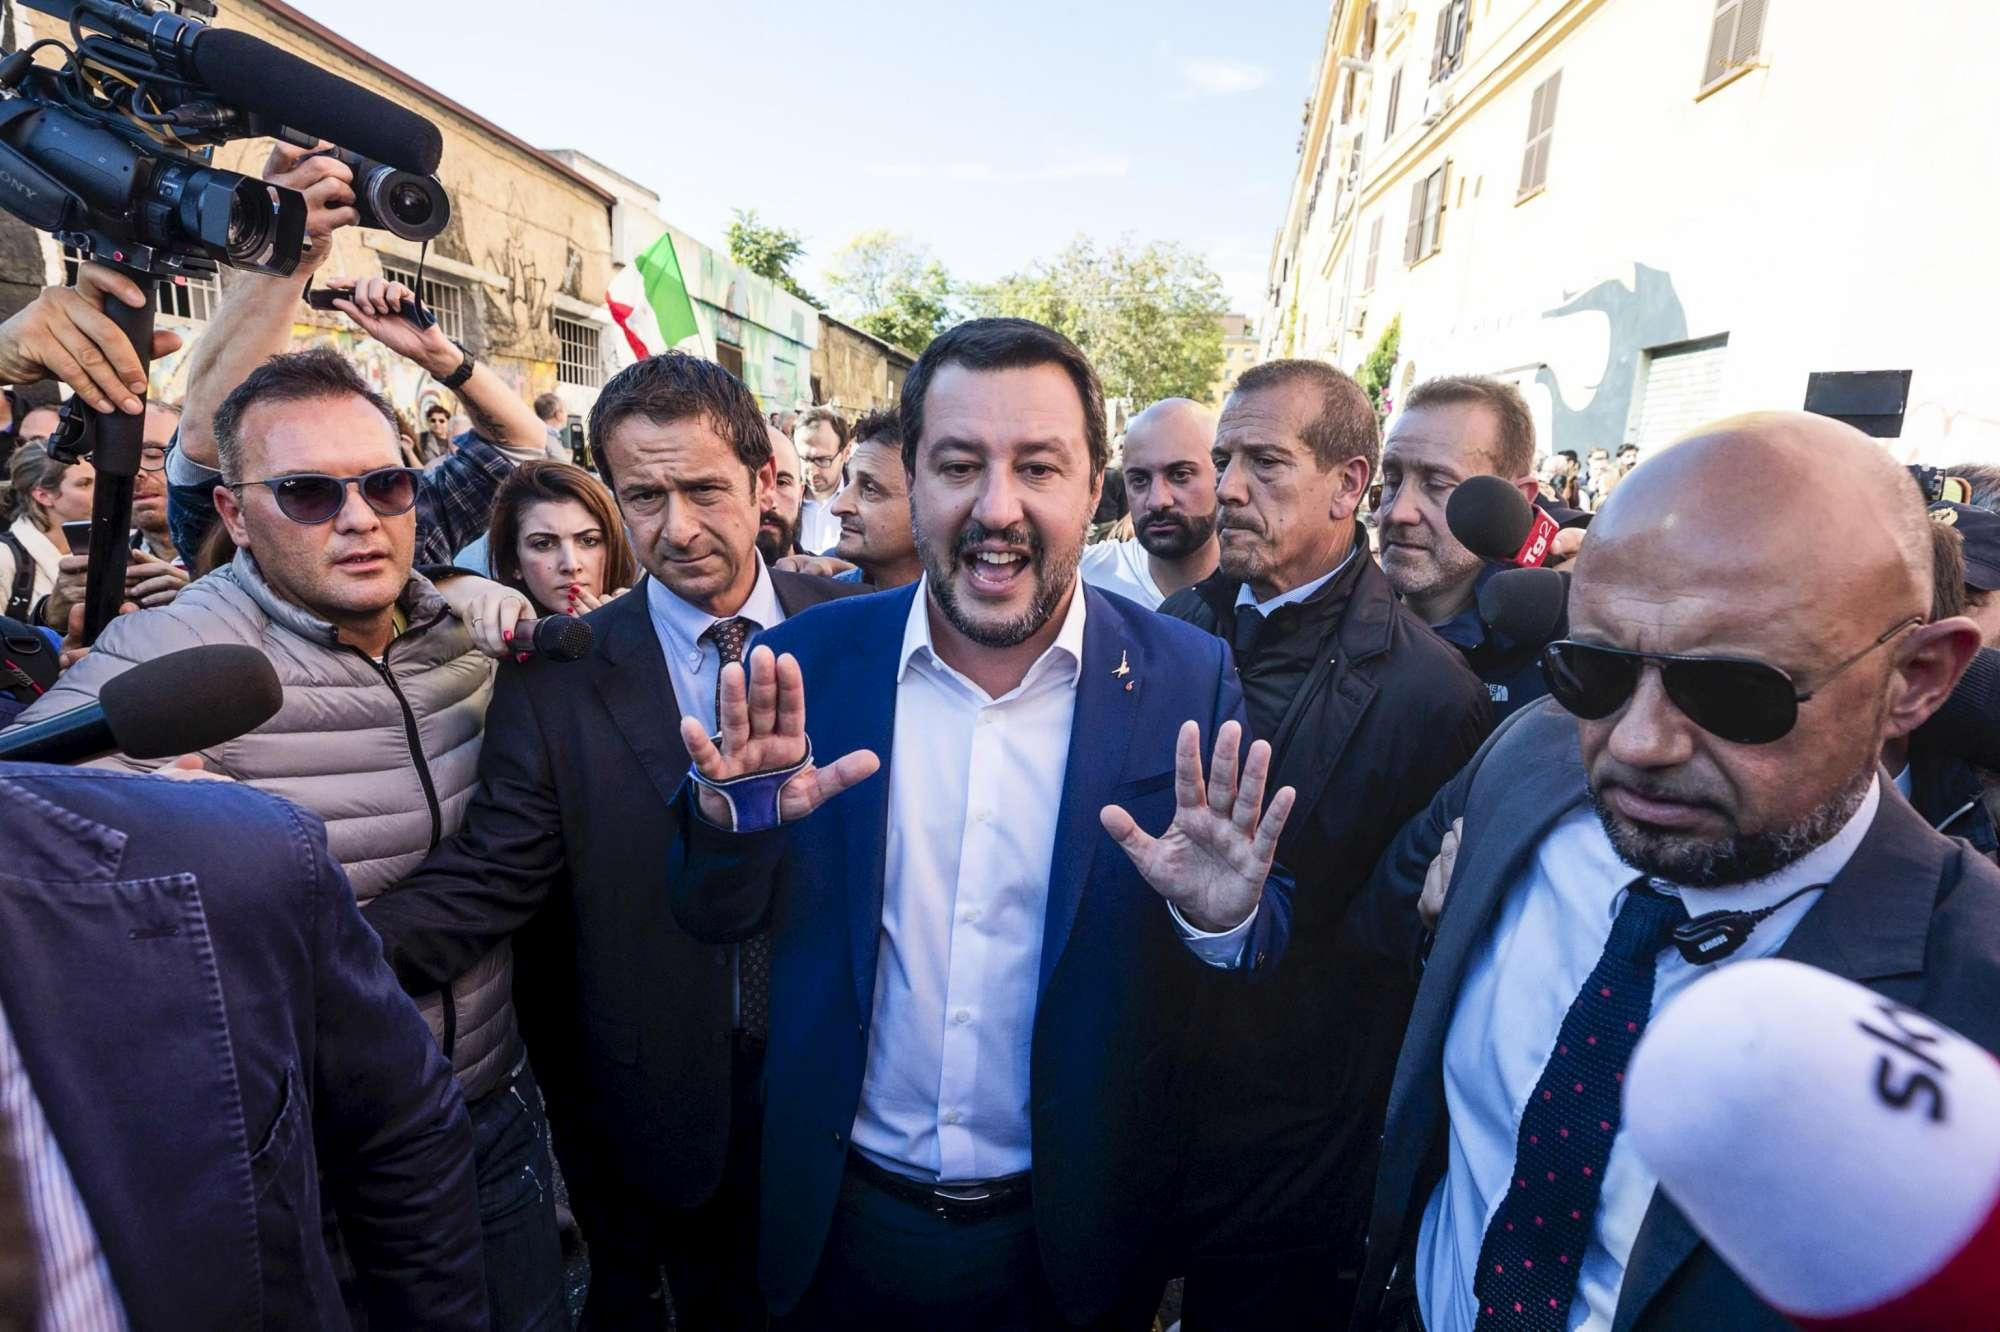 Morte Desirée, contestazioni e applausi per Salvini